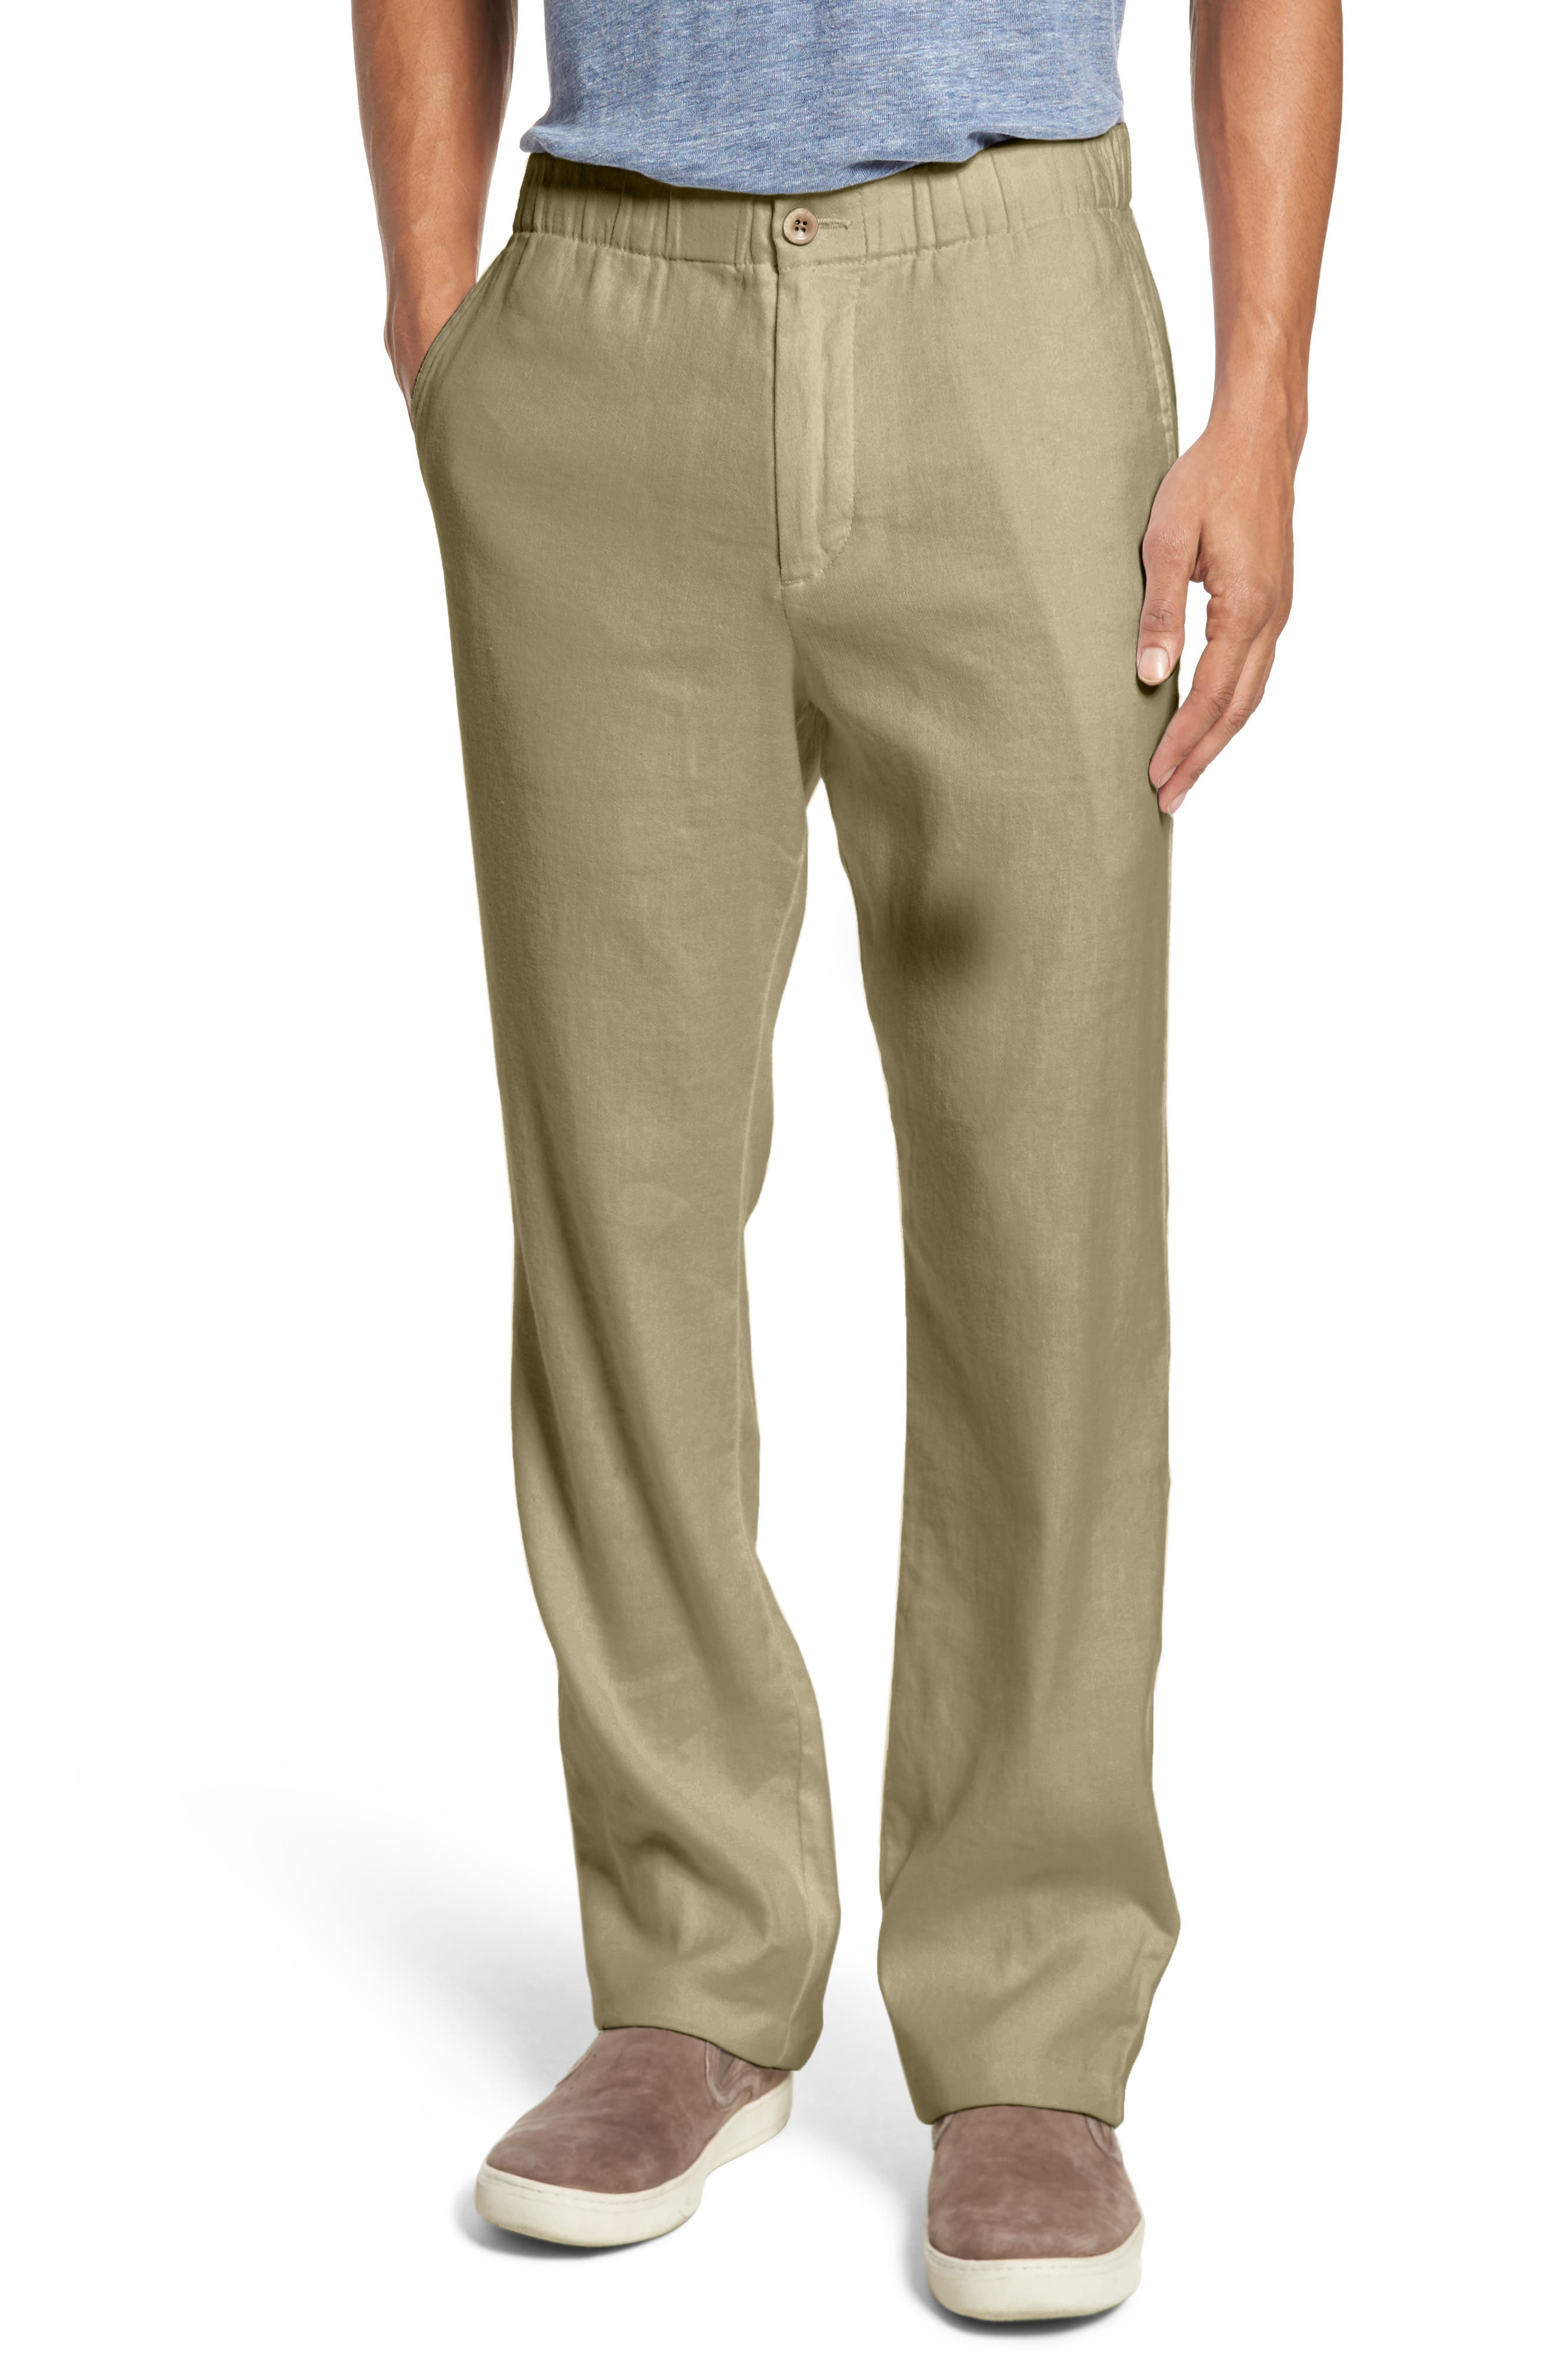 Relaxed Linen Pants,                             Main thumbnail 1, color,                             STONE KHAKI